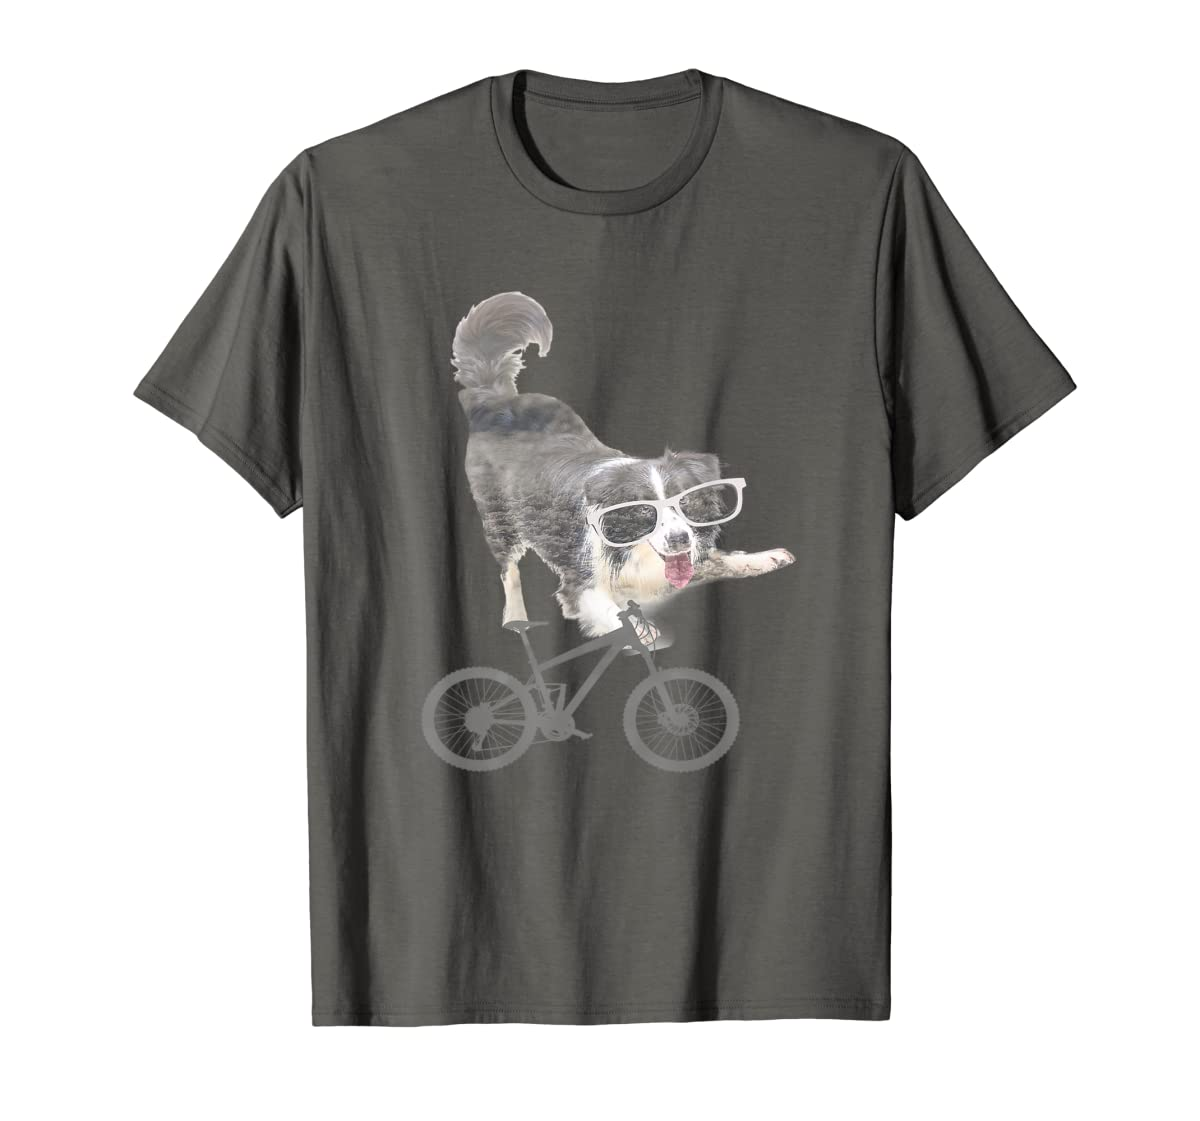 Border collie on a Bicycle T-shirt-Men's T-Shirt-Dark Heather